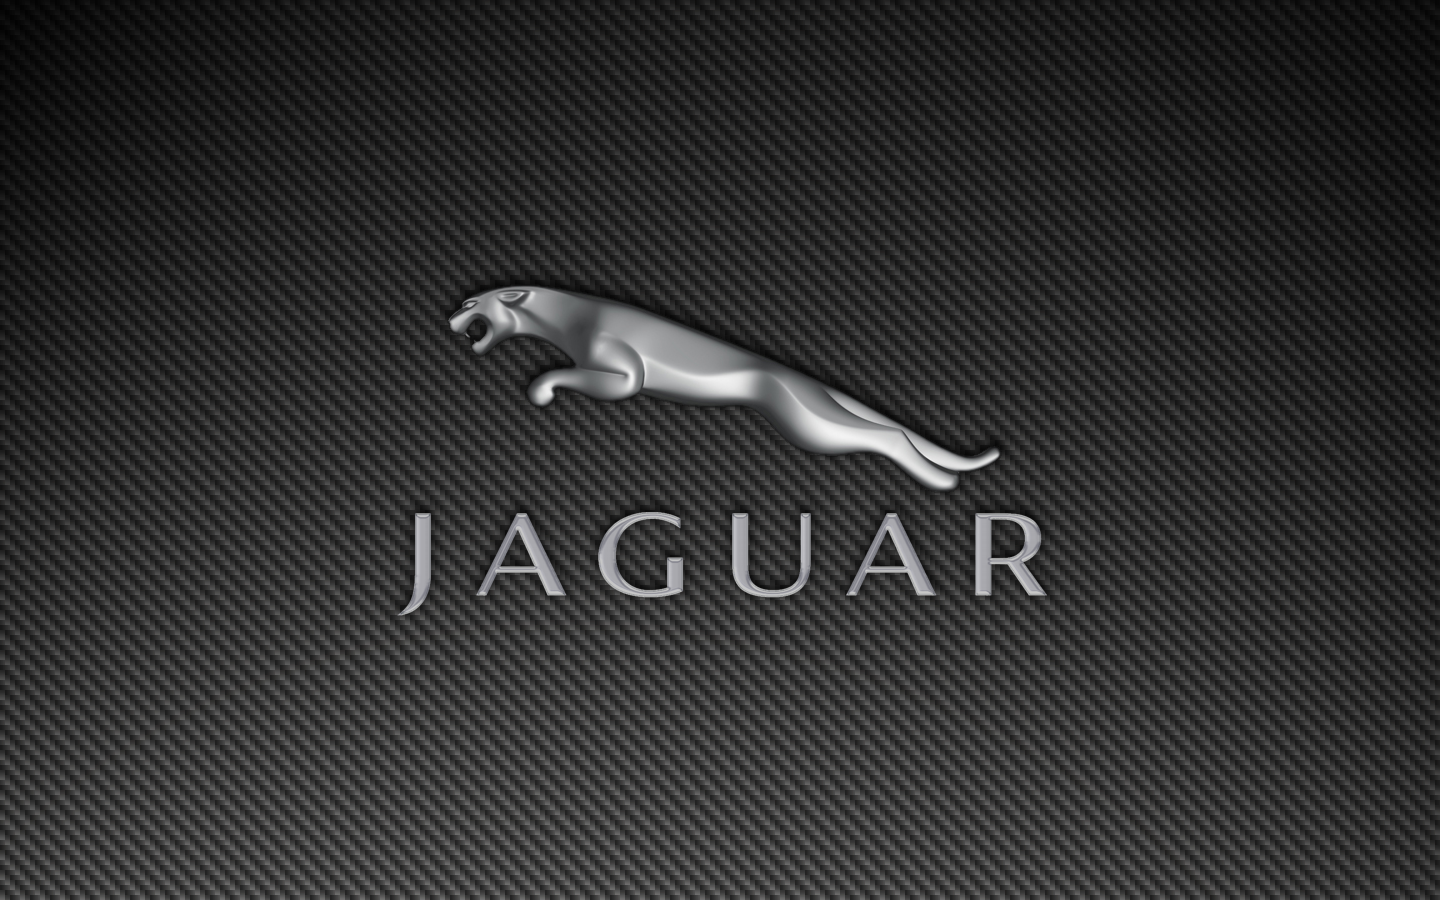 Jaguar Wallpapers and Backgrounds  Desktop Nexus Cars